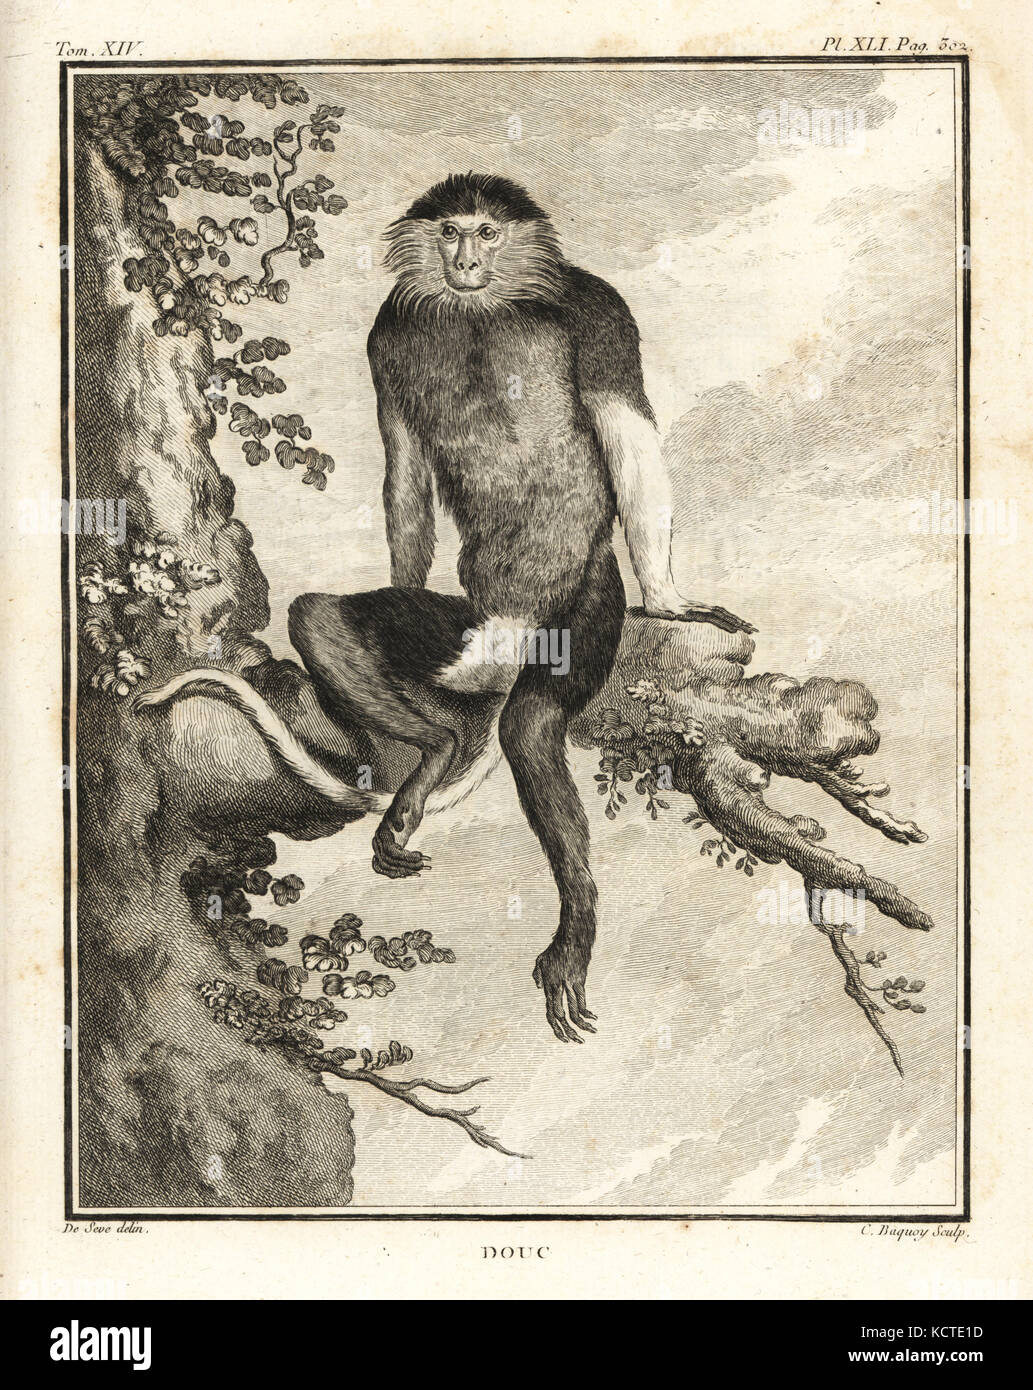 Red-shanked douc, Pygathrix nemaeus. Endangered. Copperplate engraving by C. Baquoy after an illustration by Jacques Stock Photo